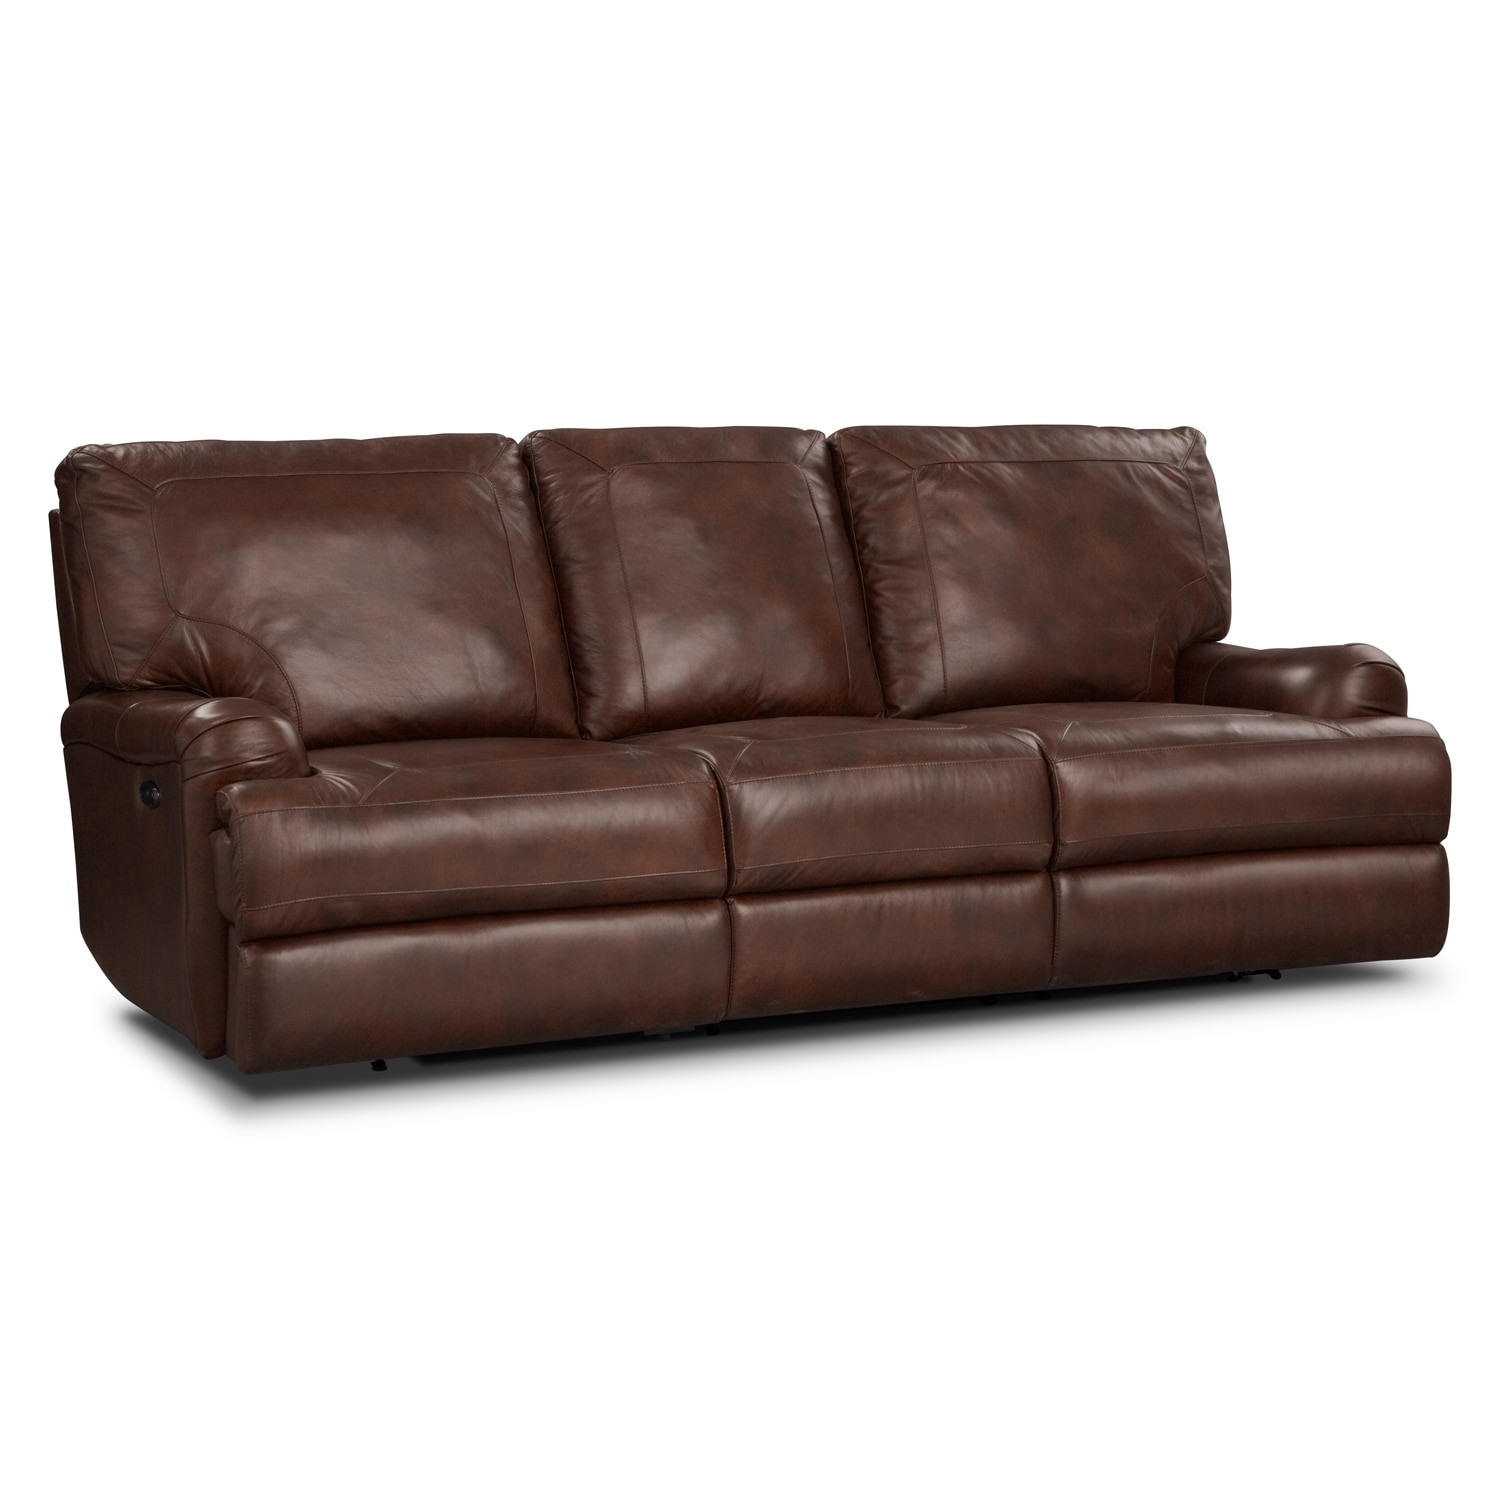 Kingsway Power Reclining Sofa - Brown